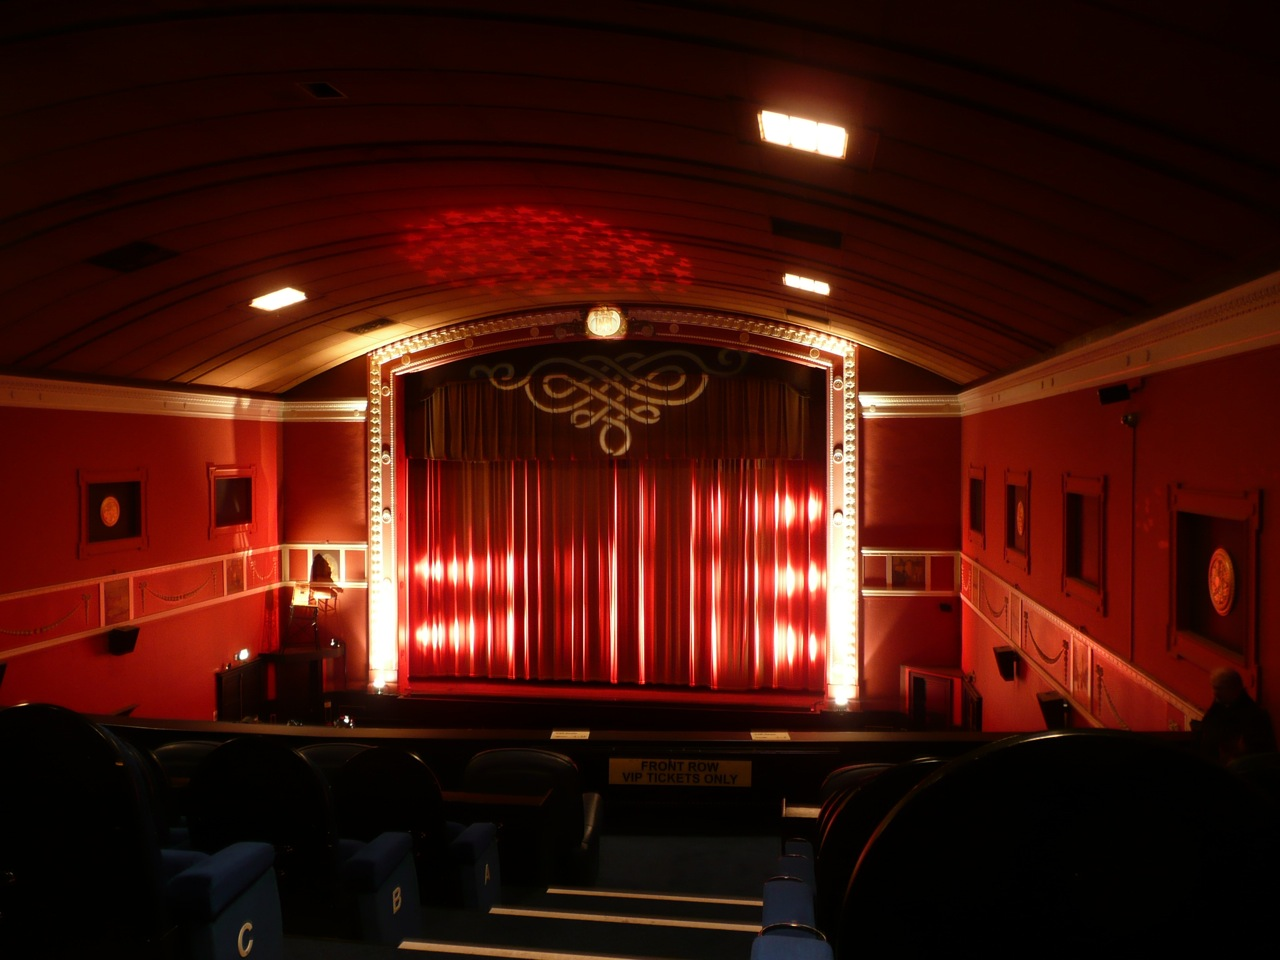 Co uk wp content uploads 2010 03 new picture house cinema gbarr